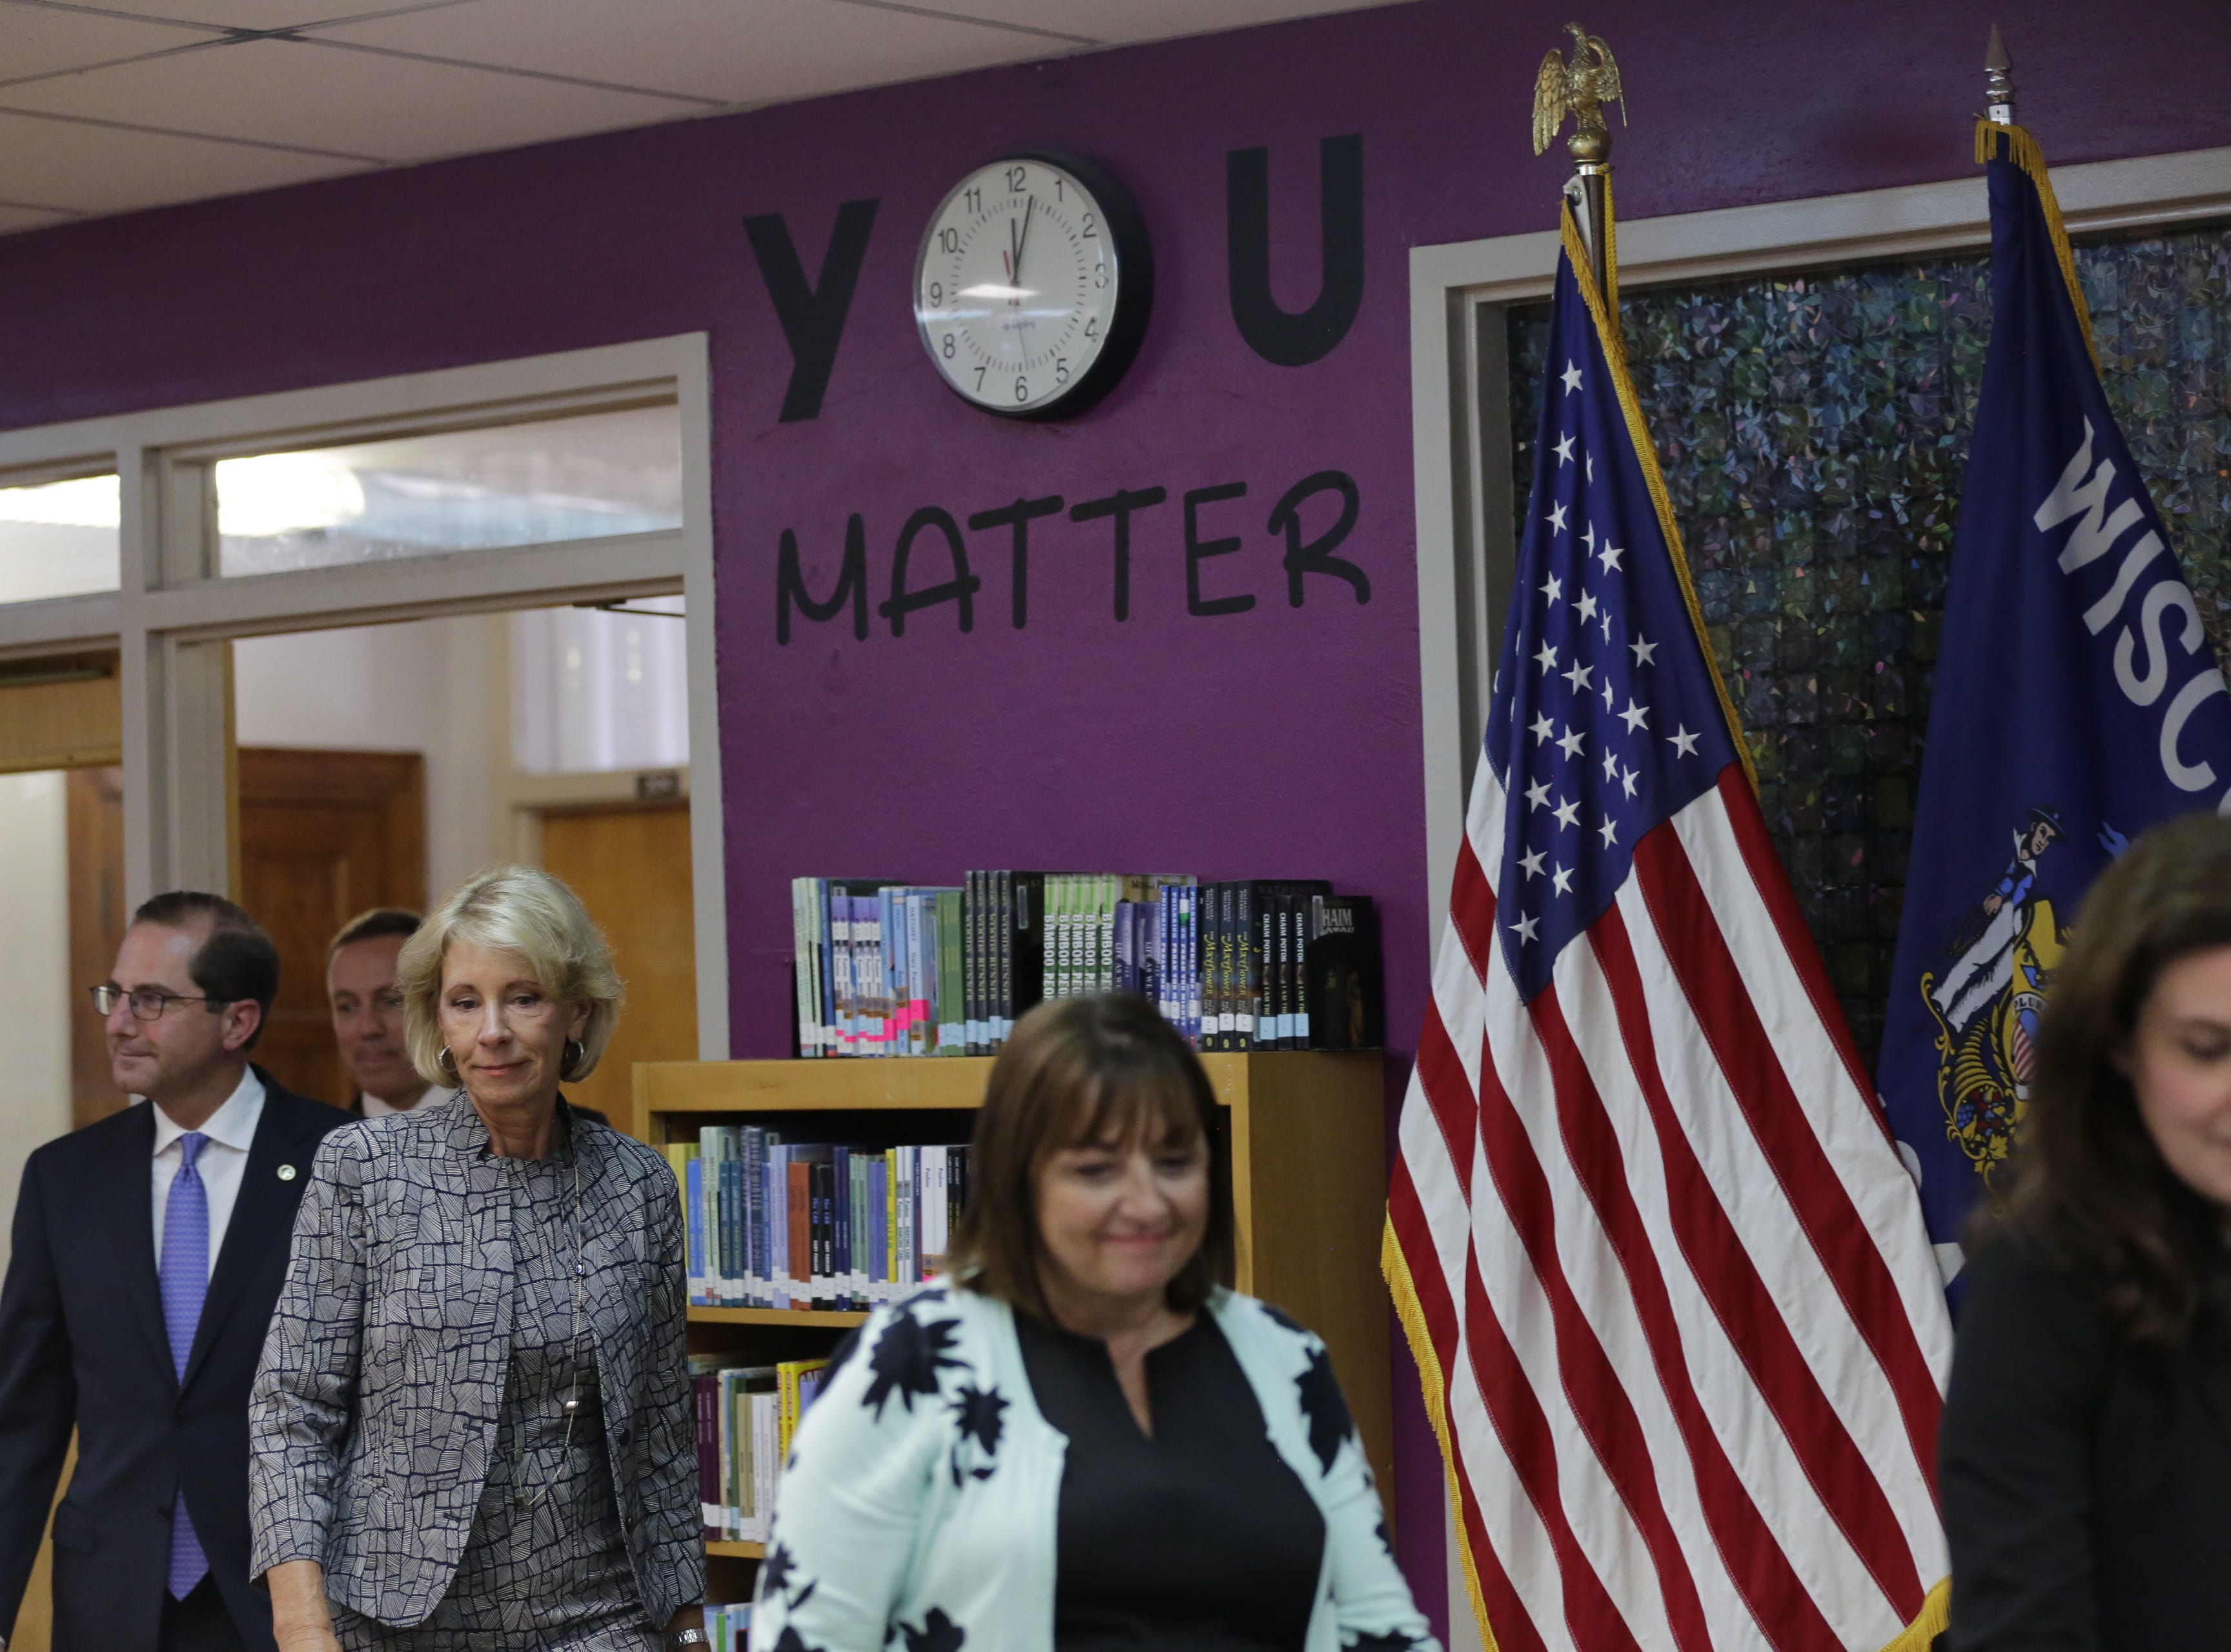 U.S. Secretary of Education Betsy DeVos, center, enters the library of Adams-Friendship Middle School in Adams, Wis. with Wisconsin first lady Tonette Walker, right and U.S. Health and Human Services Secretary Alex Azar, left Tuesday, July 24, 2018.